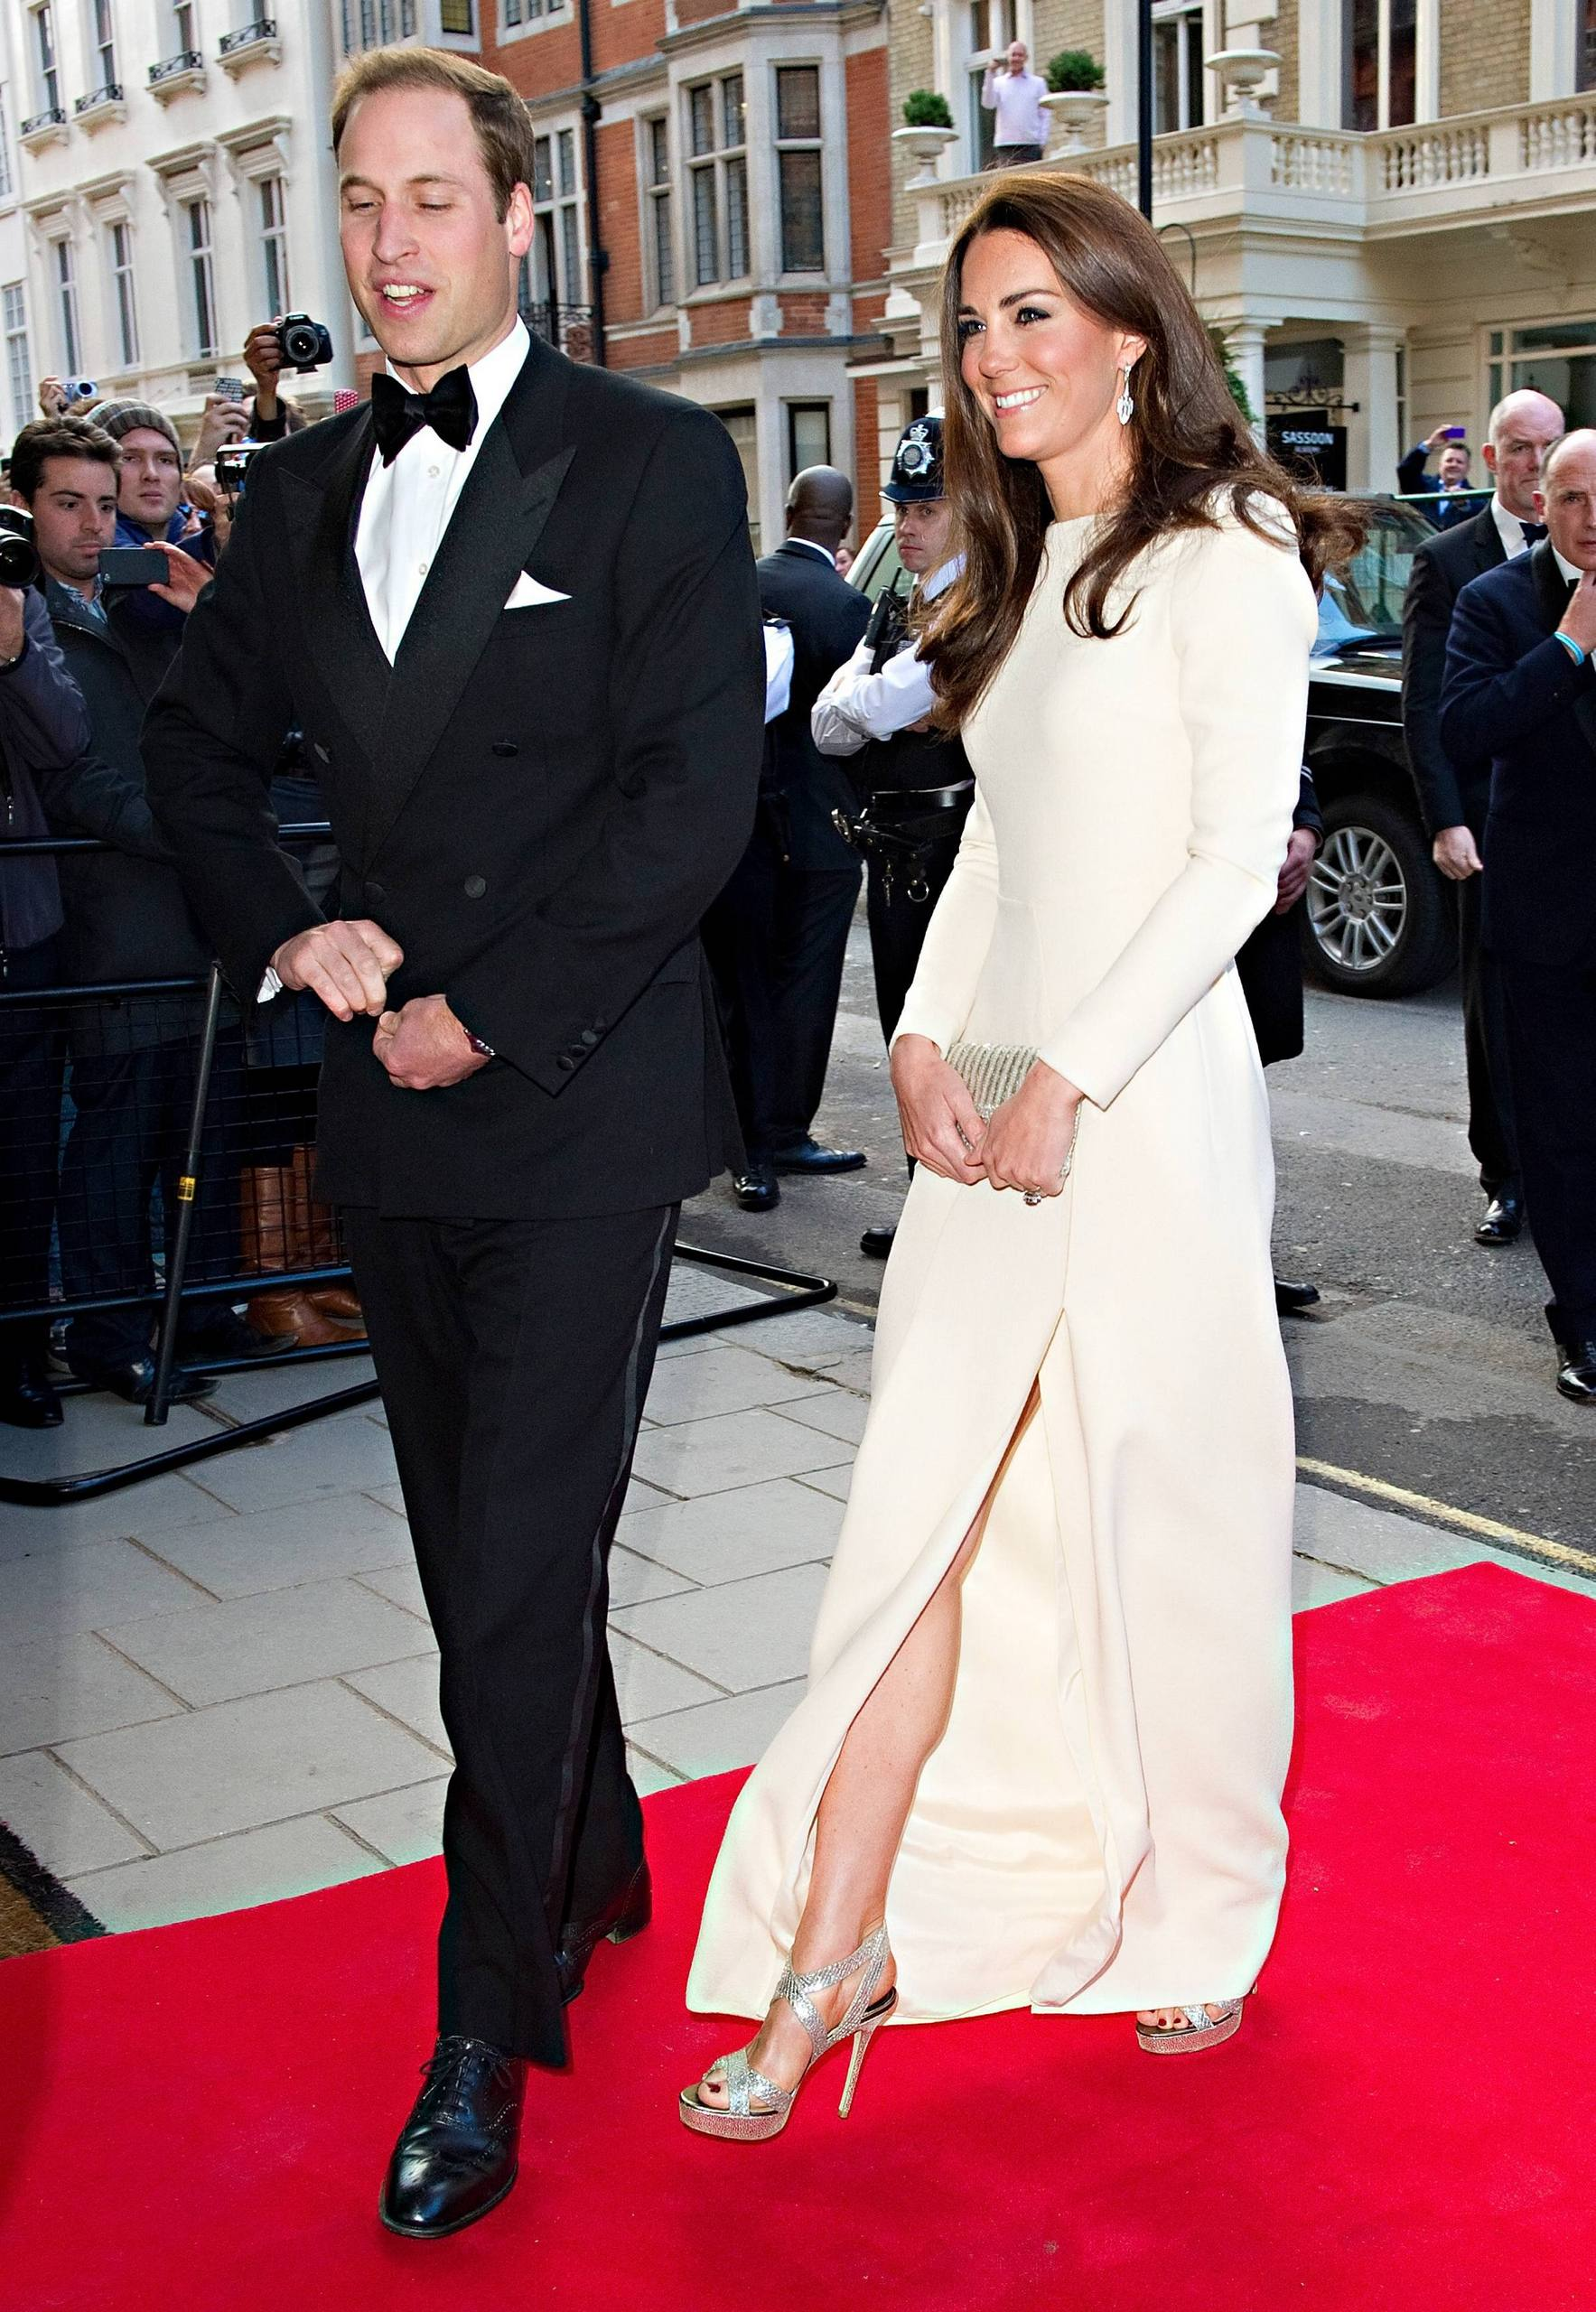 William and Kate 2012 The 30 Club 晚餐